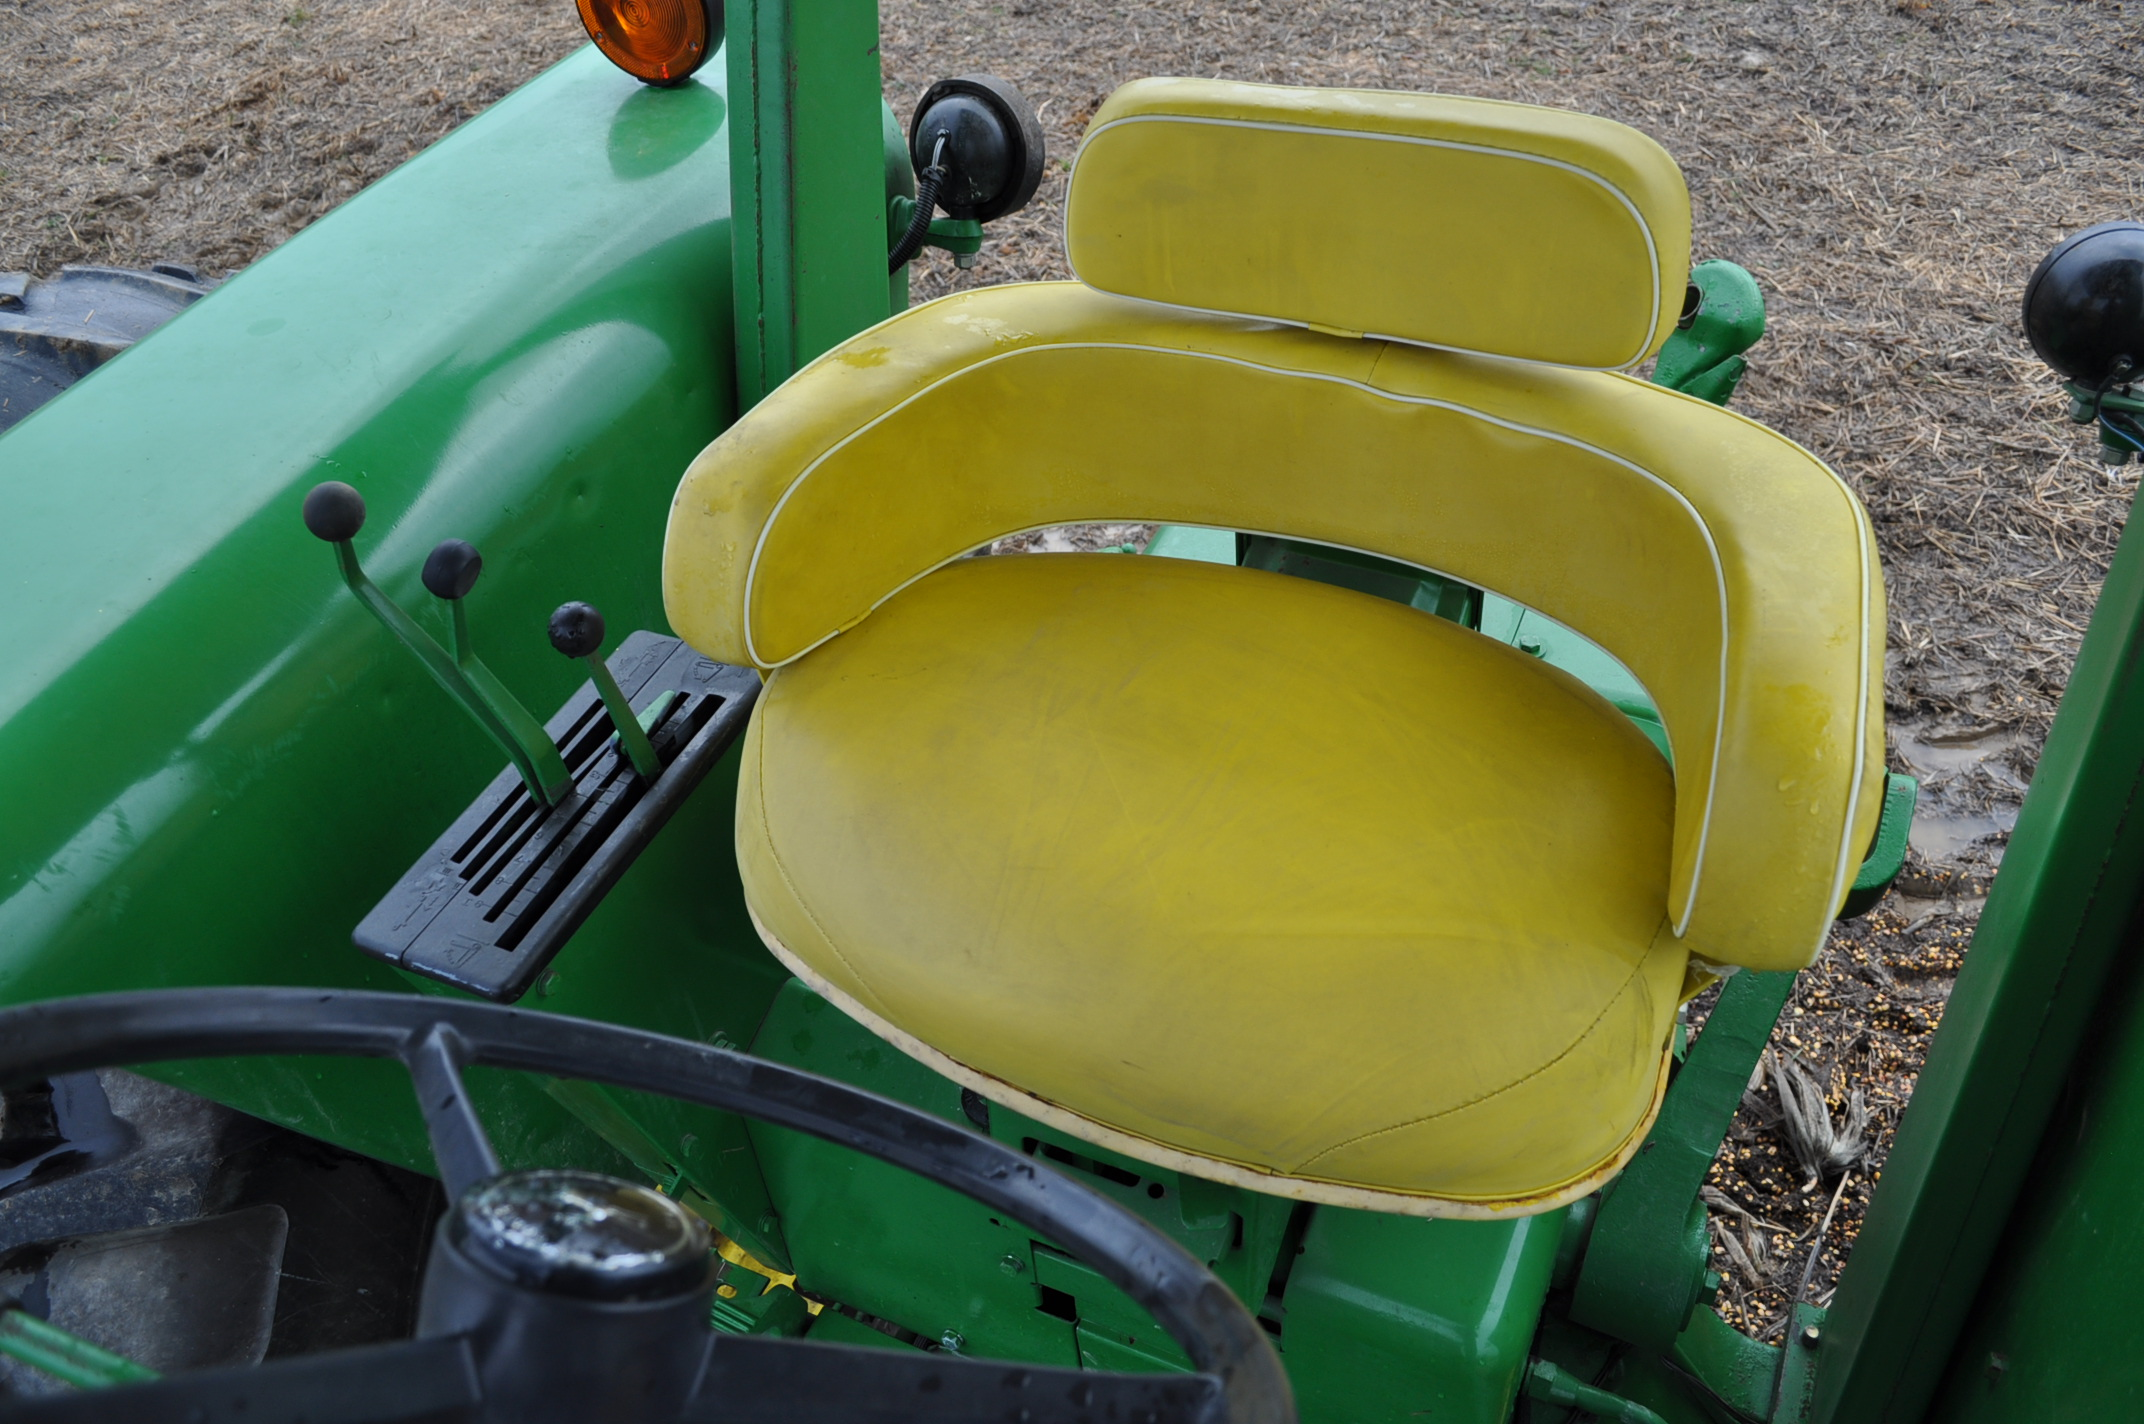 John Deere 4520 tractor, ***4520 frame with 4620 engine**** diesel, 18.4-38 new inside rear - Image 14 of 17